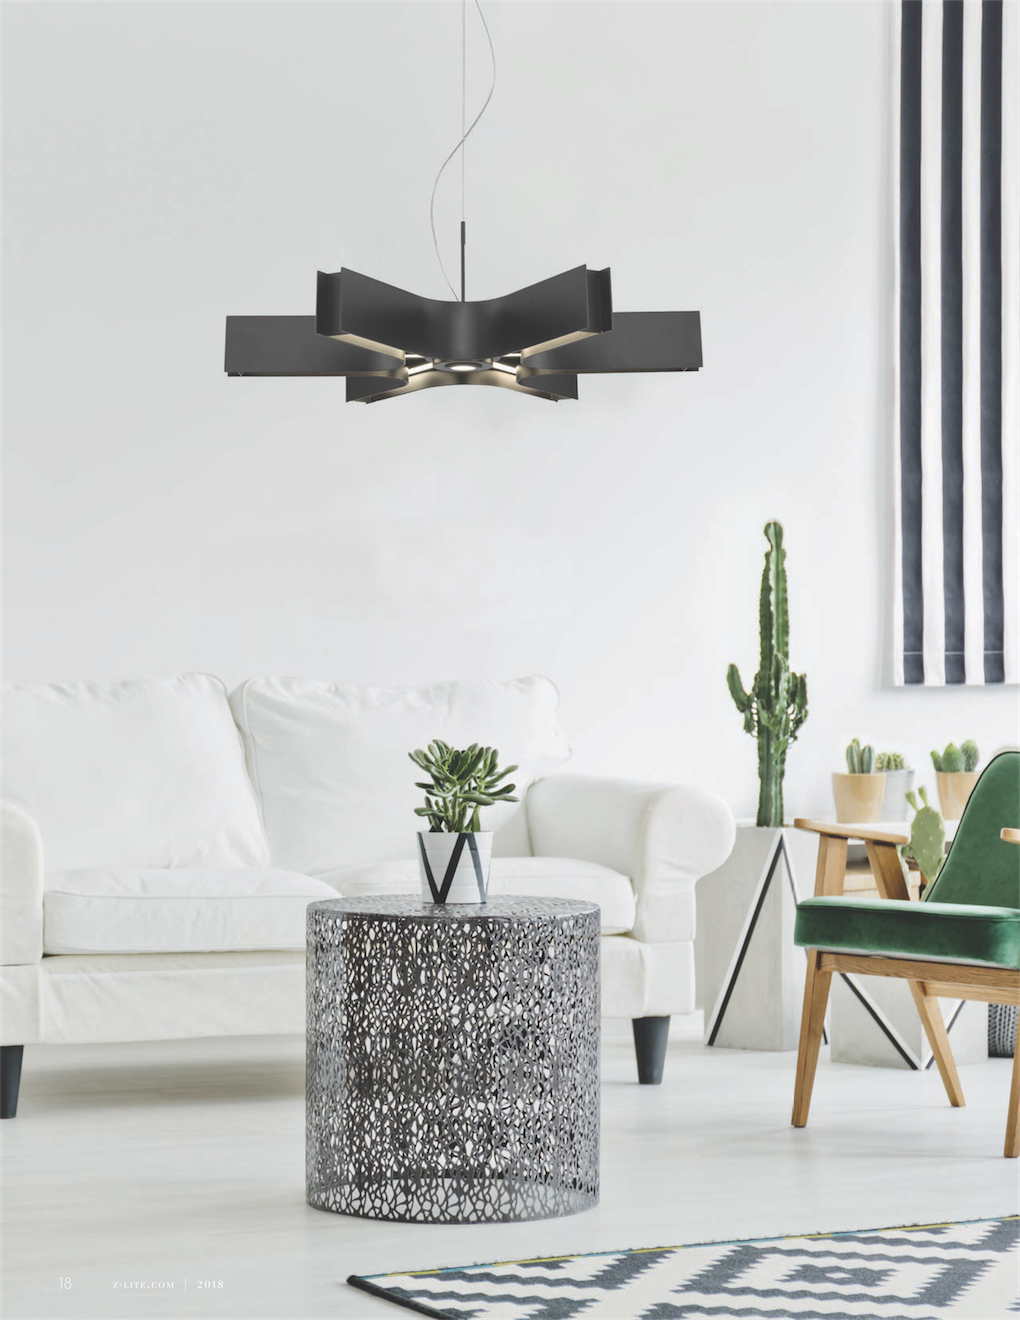 Pendant Lighting Transitional ARCANO Z-Lite 8002-24MB-LED in a living room above a leather white couch with table and cactus